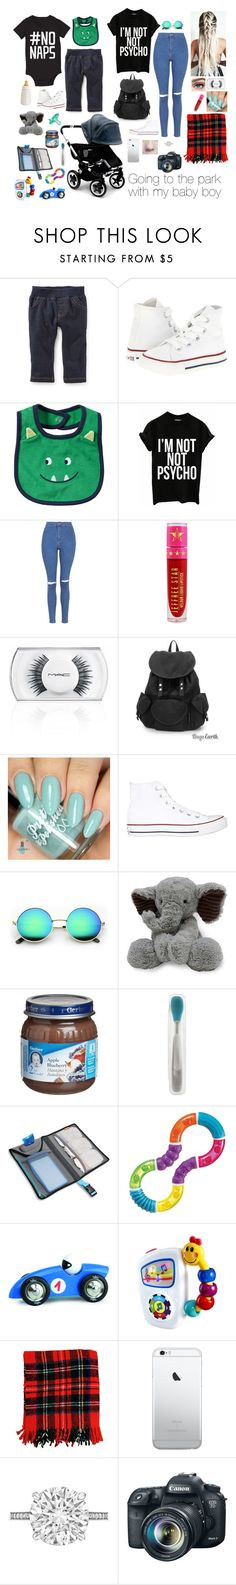 """""""Going to the park with my baby boy"""" by brenda-all-over ❤ liked on Polyvore featuring Converse, Topshop, Jeffree Star, MAC Cosmetics, Gerber, Betteridge and Eos"""